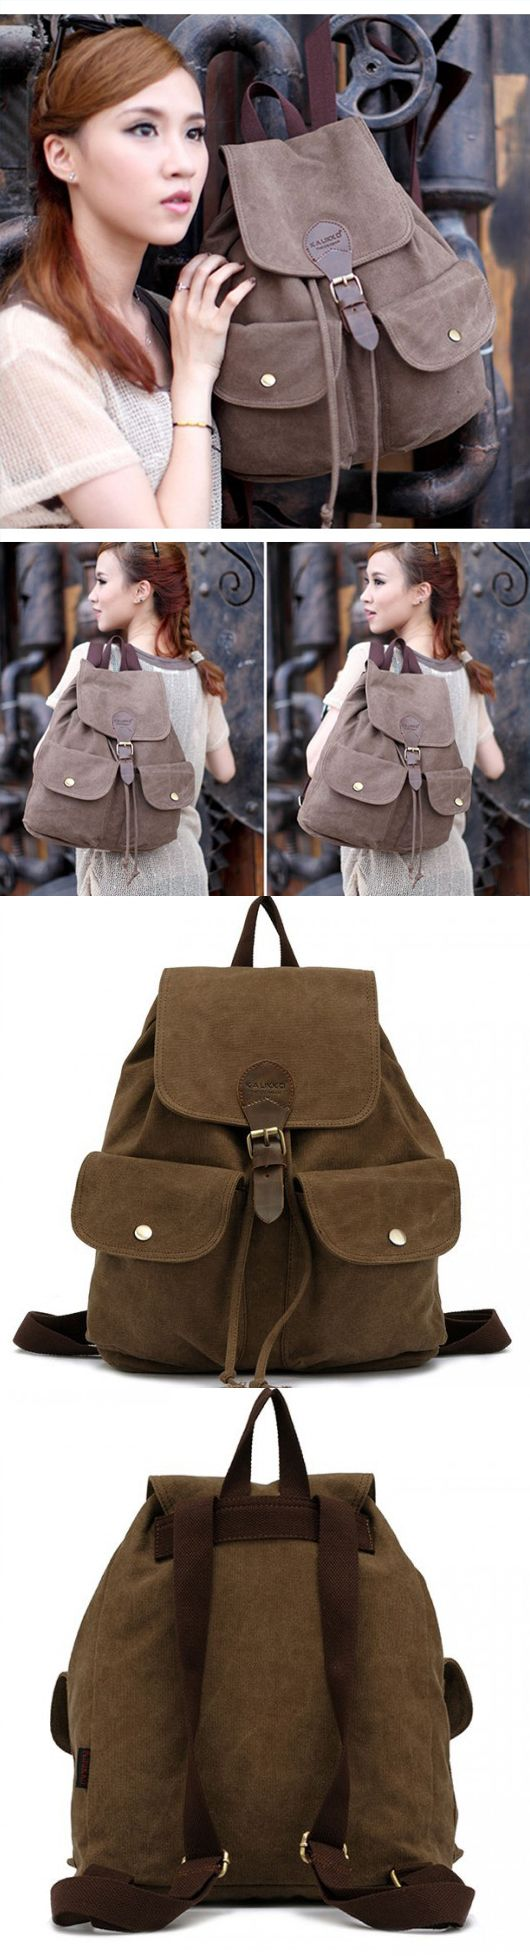 2017 Fashion Leather High-density Canvas Casual Backpack for Women backpack for girls teens,backpack for girls school,backpack for girls fashion,backpack for girls cute,backpack gear,backpack hiking,backpack hiking women,backpack laptop,backpack laptop women,backpack laptop women work bags,backpack laptop women fashion,backpack laptop women travel,backpack laptop women fashion,backpack luggage,backpack luggage strap,backpack luggage travel,backpack college,backpack college laptops,